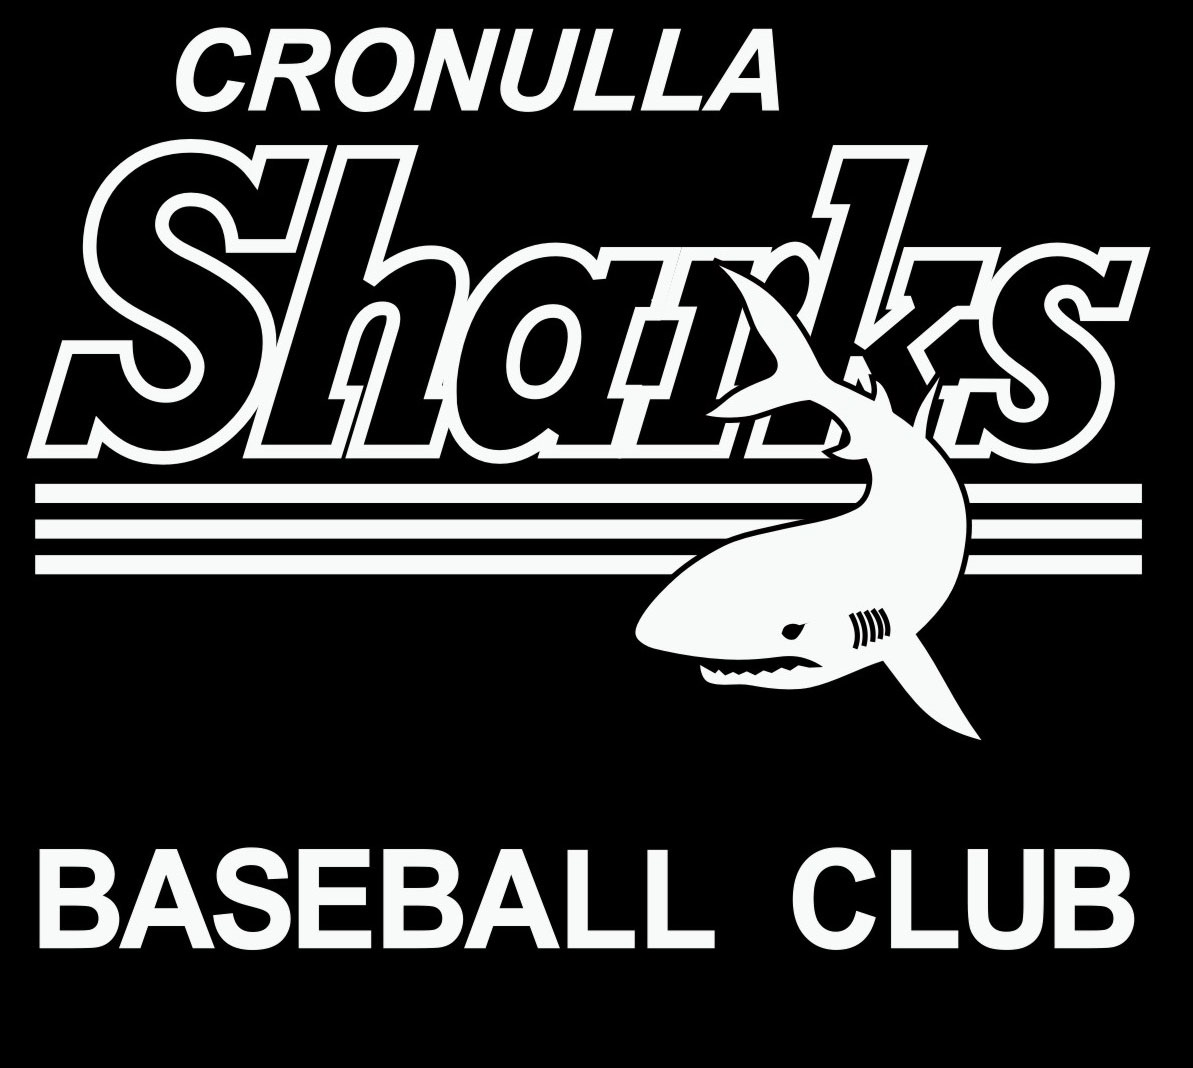 Cronulla Sharks Baseball Club